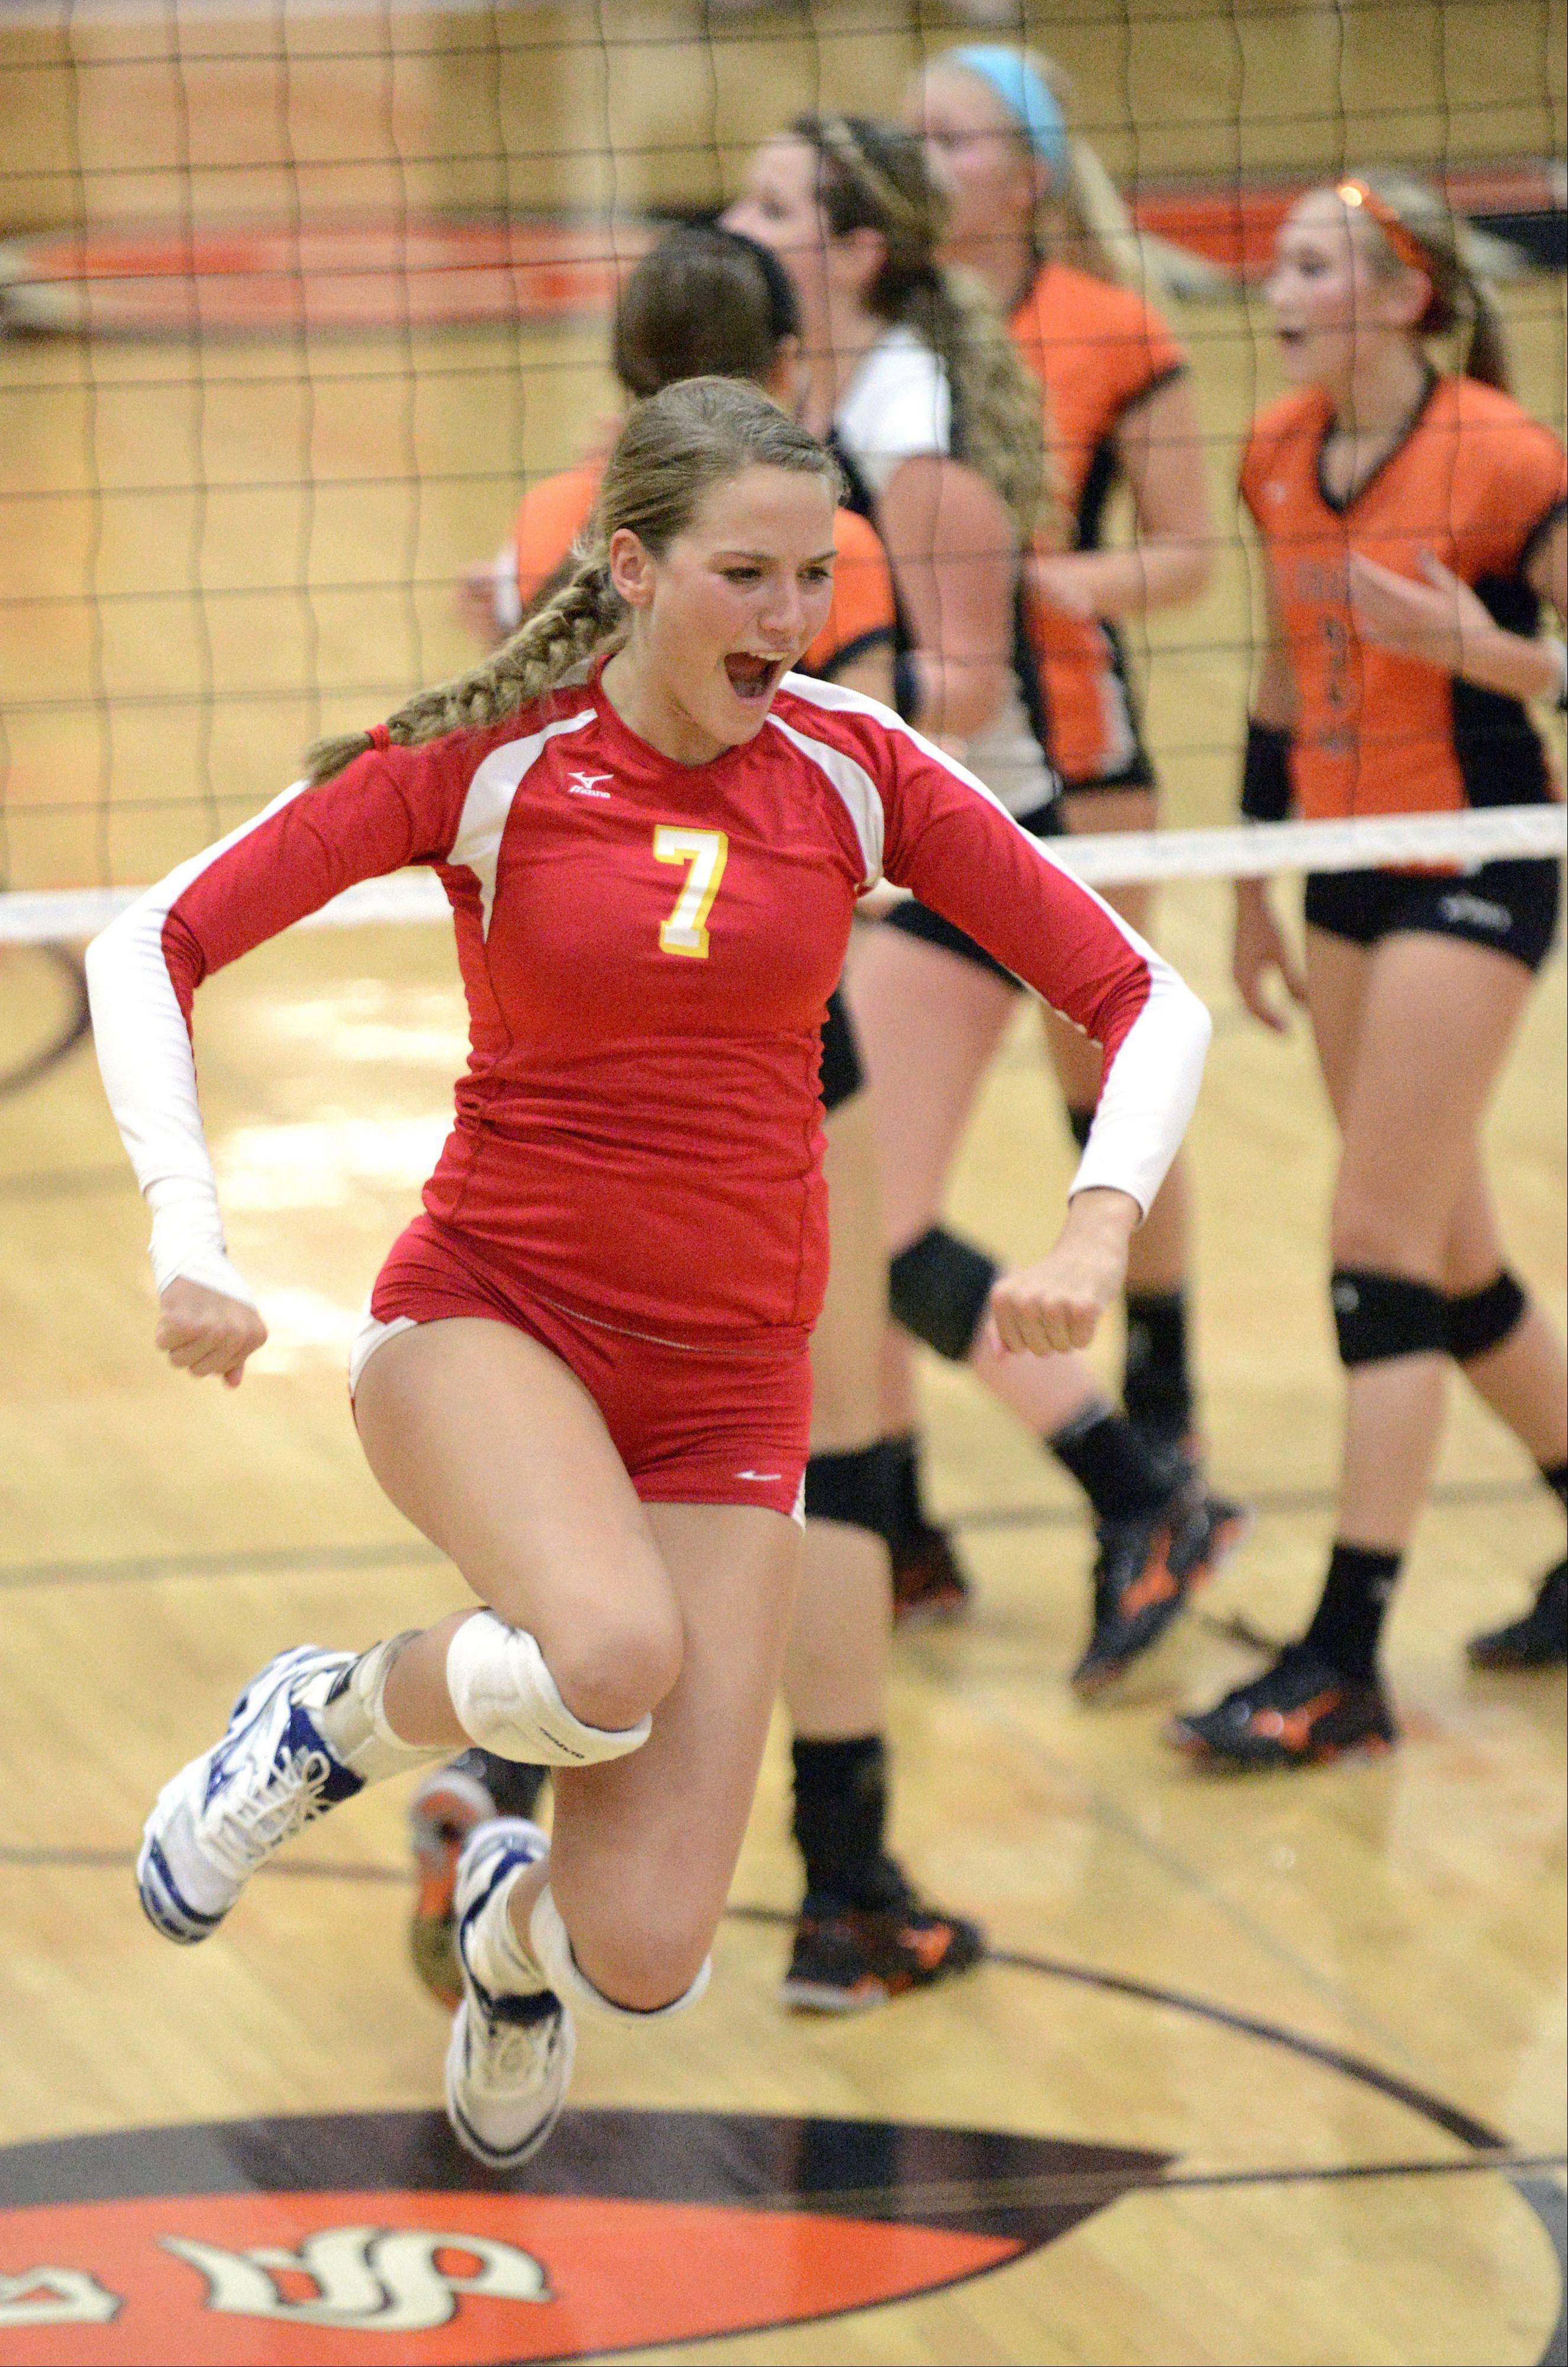 Batavia's Jancy Lundberg leaps for joy after the Bulldogs scored a point over St. Charles East on Tuesday.